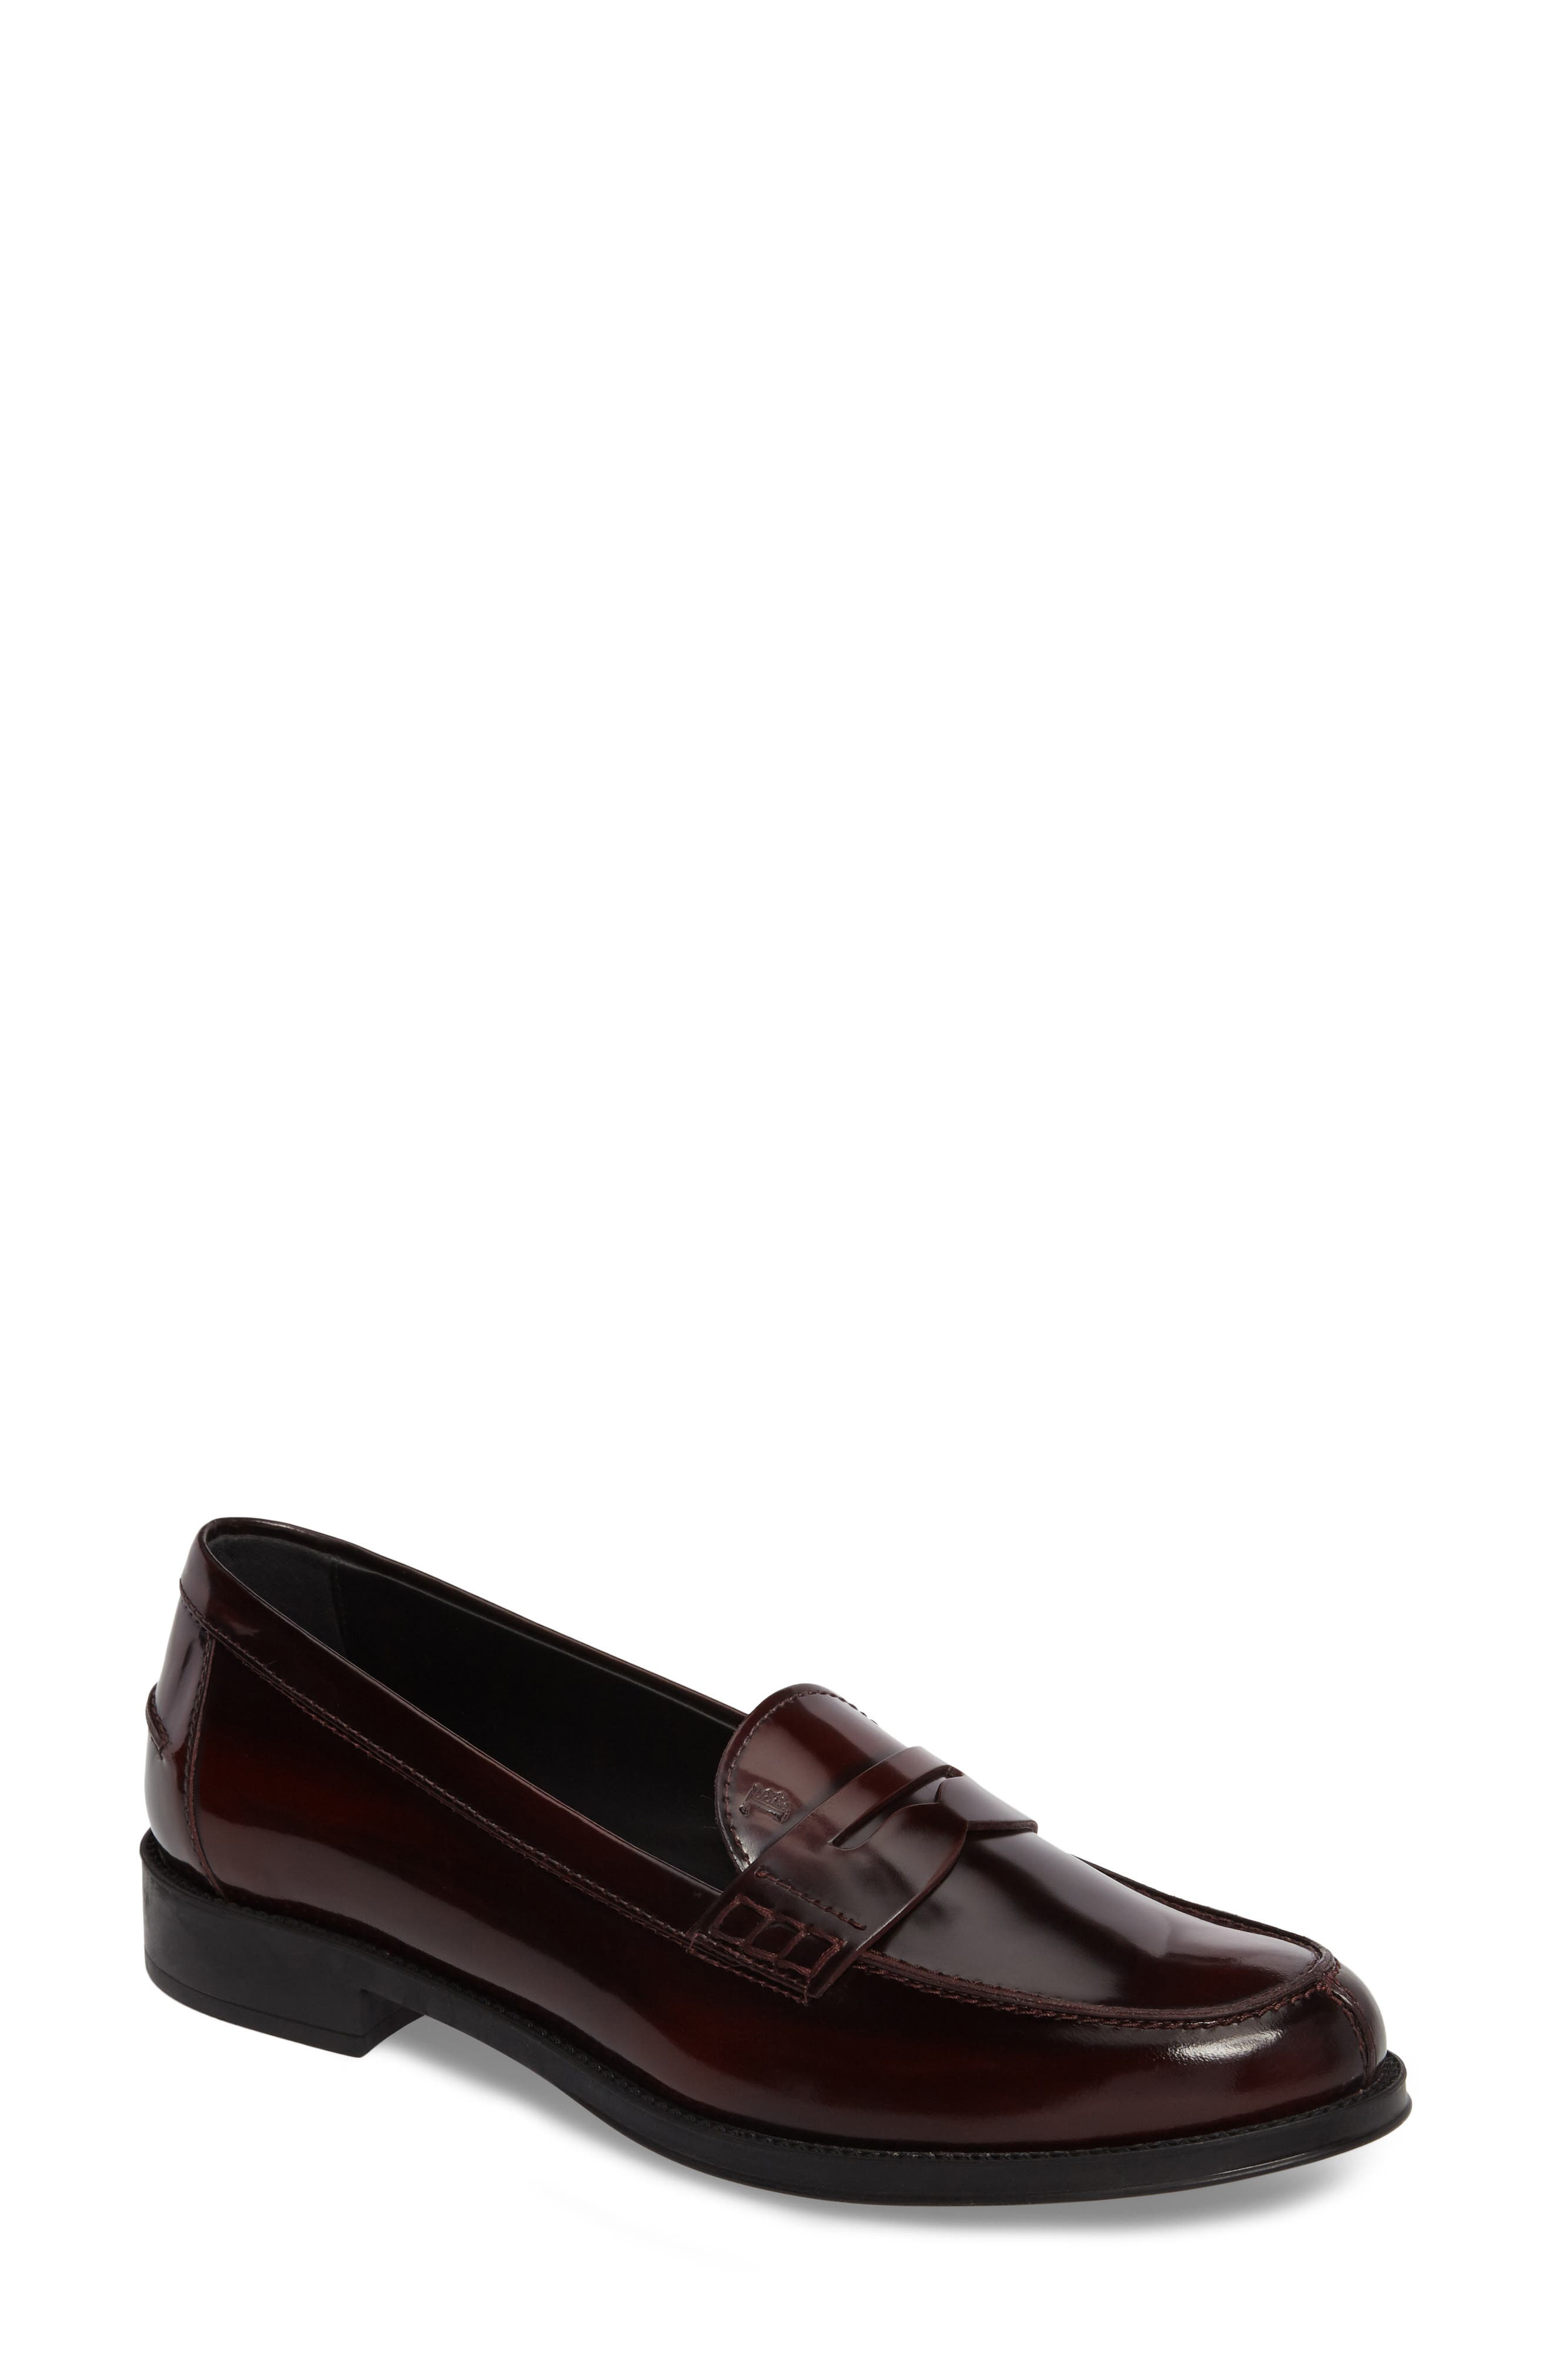 Alternate Image 1 Selected - Tod's Penny Loafer (Women)